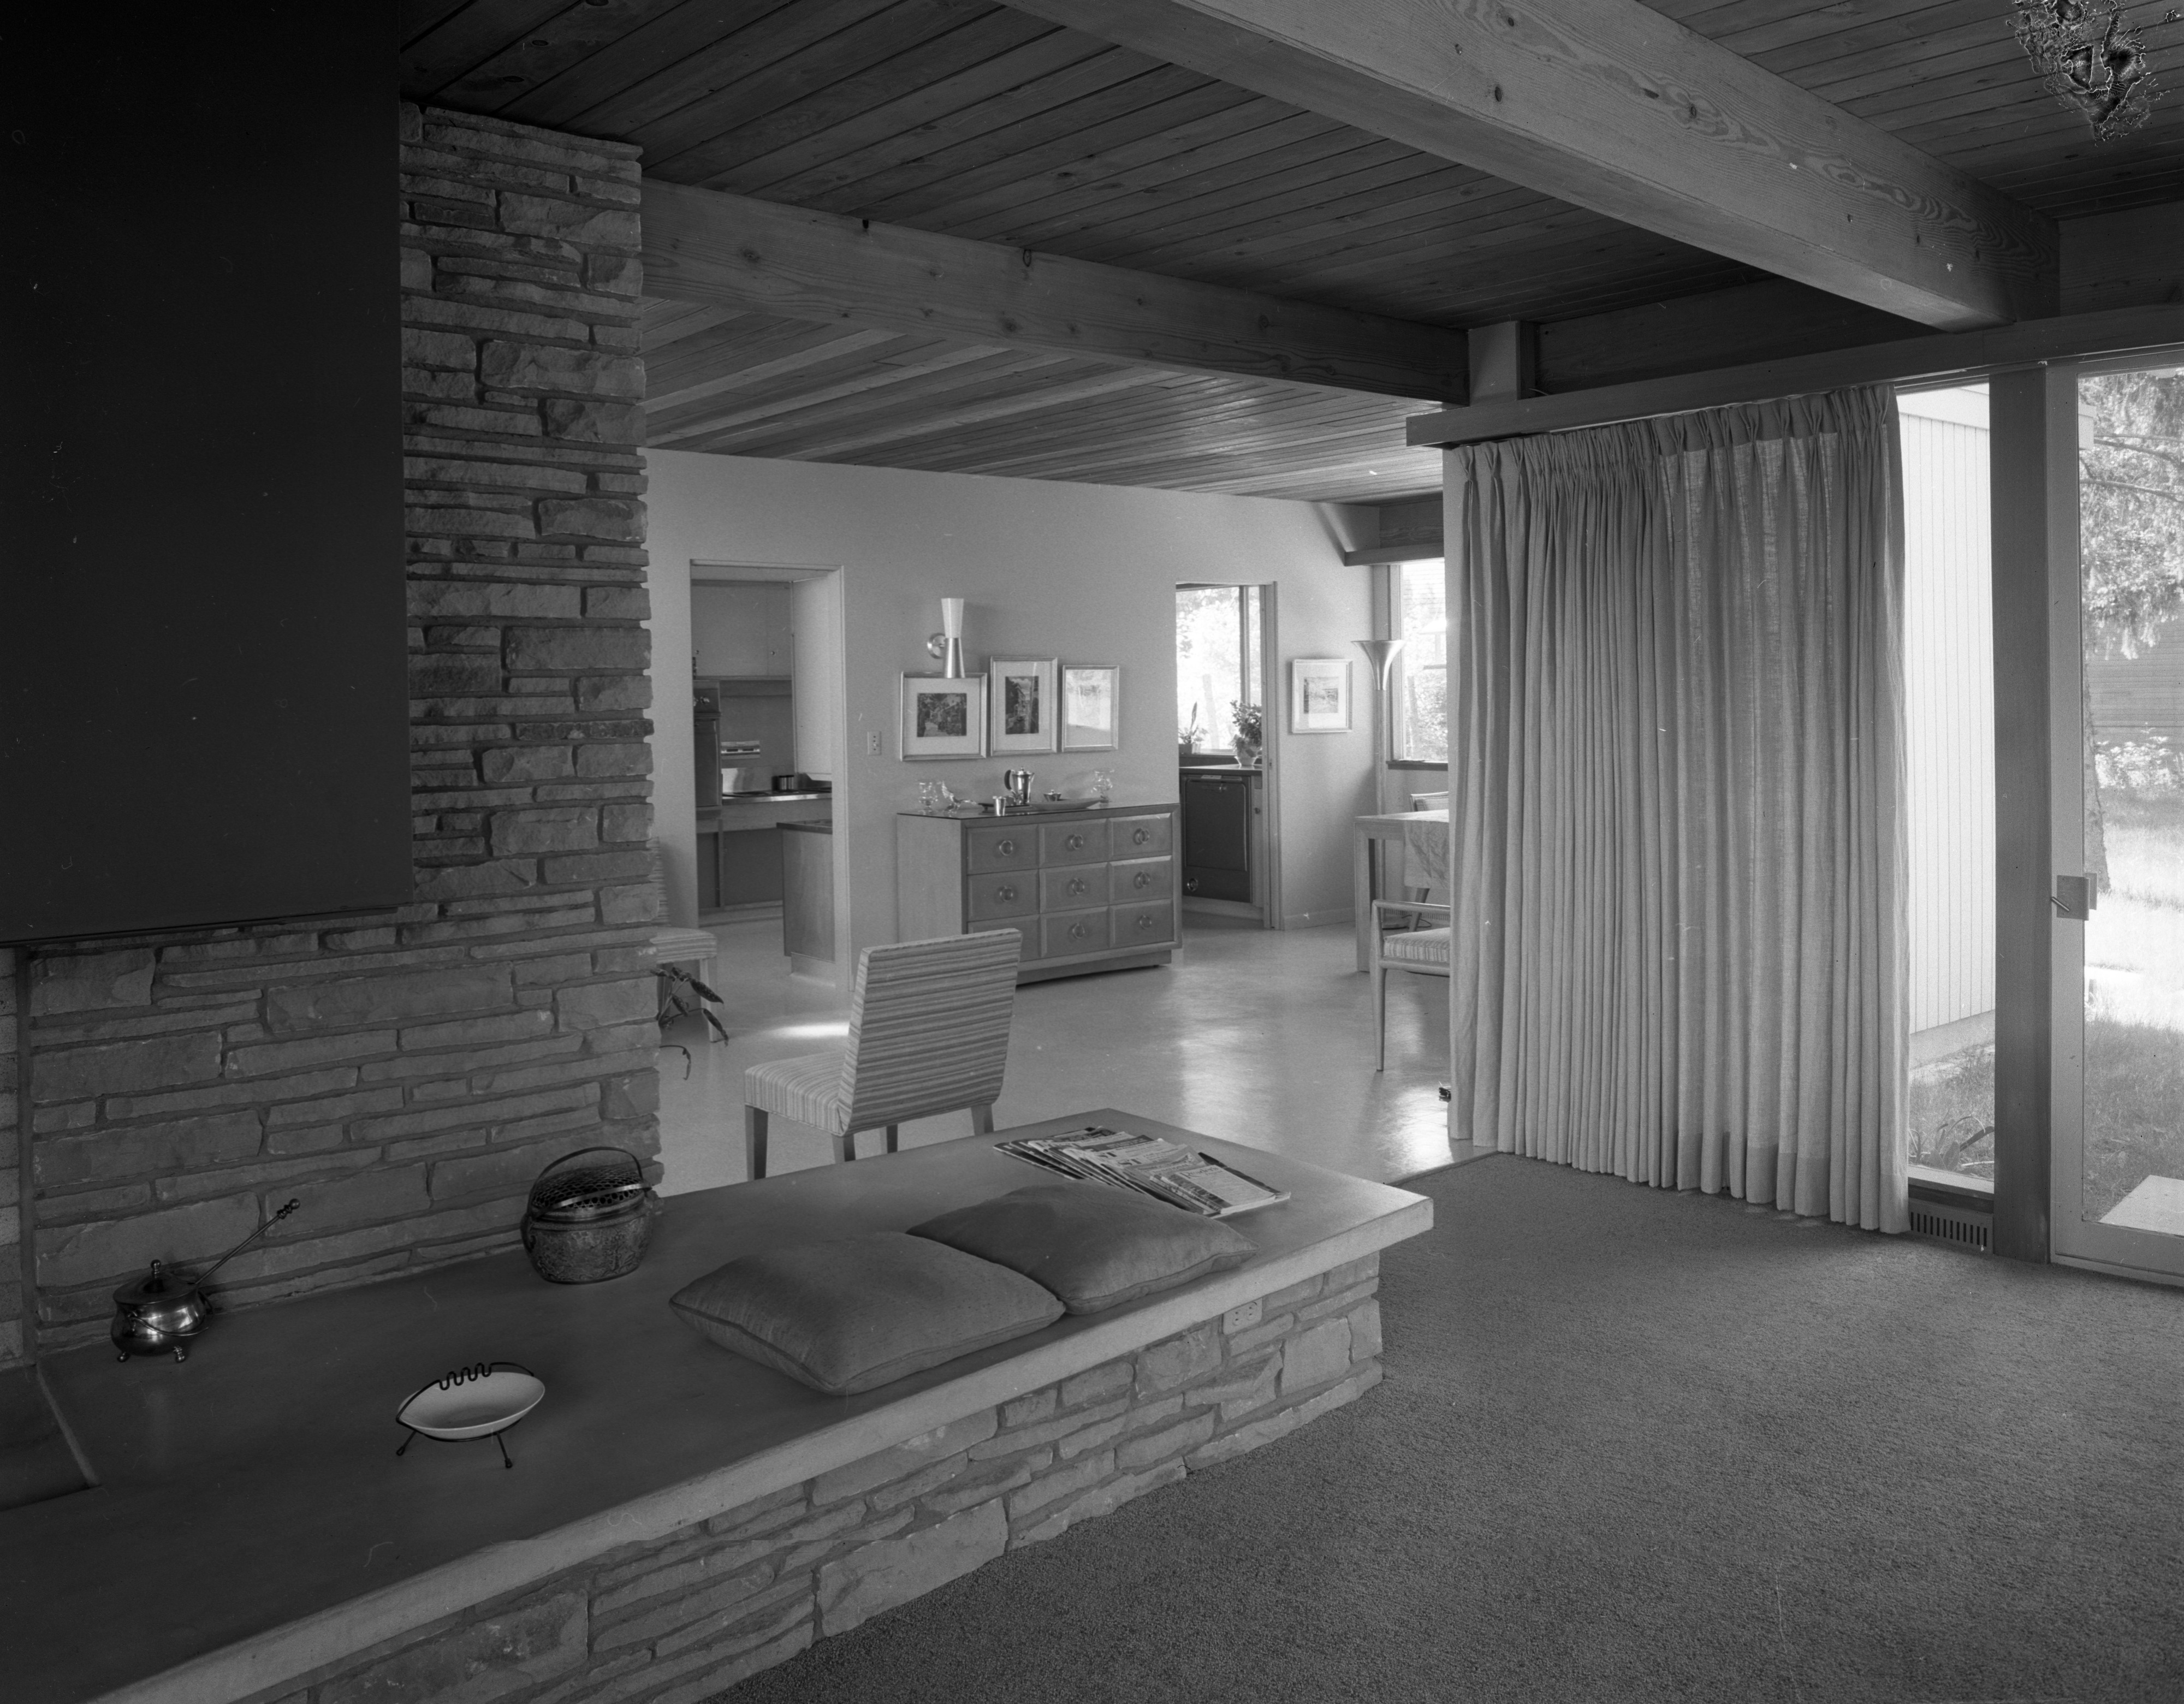 Ledge-Rock Fireplace In Hodges' Mid-Century Modern Home On Highland Lane, September 1957 image